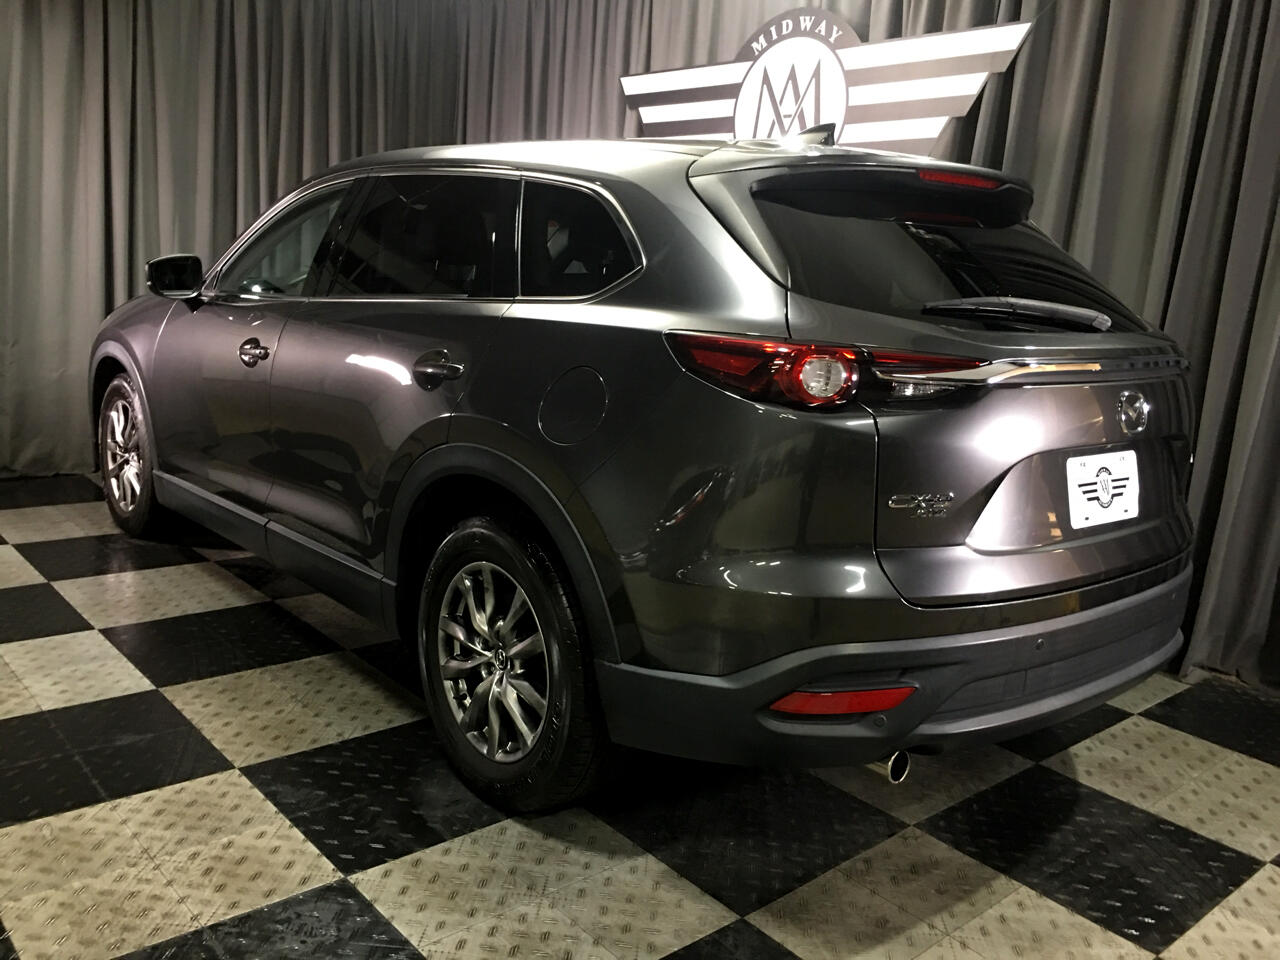 Pre-Owned 2016 Mazda CX-9 AWD 4dr Touring